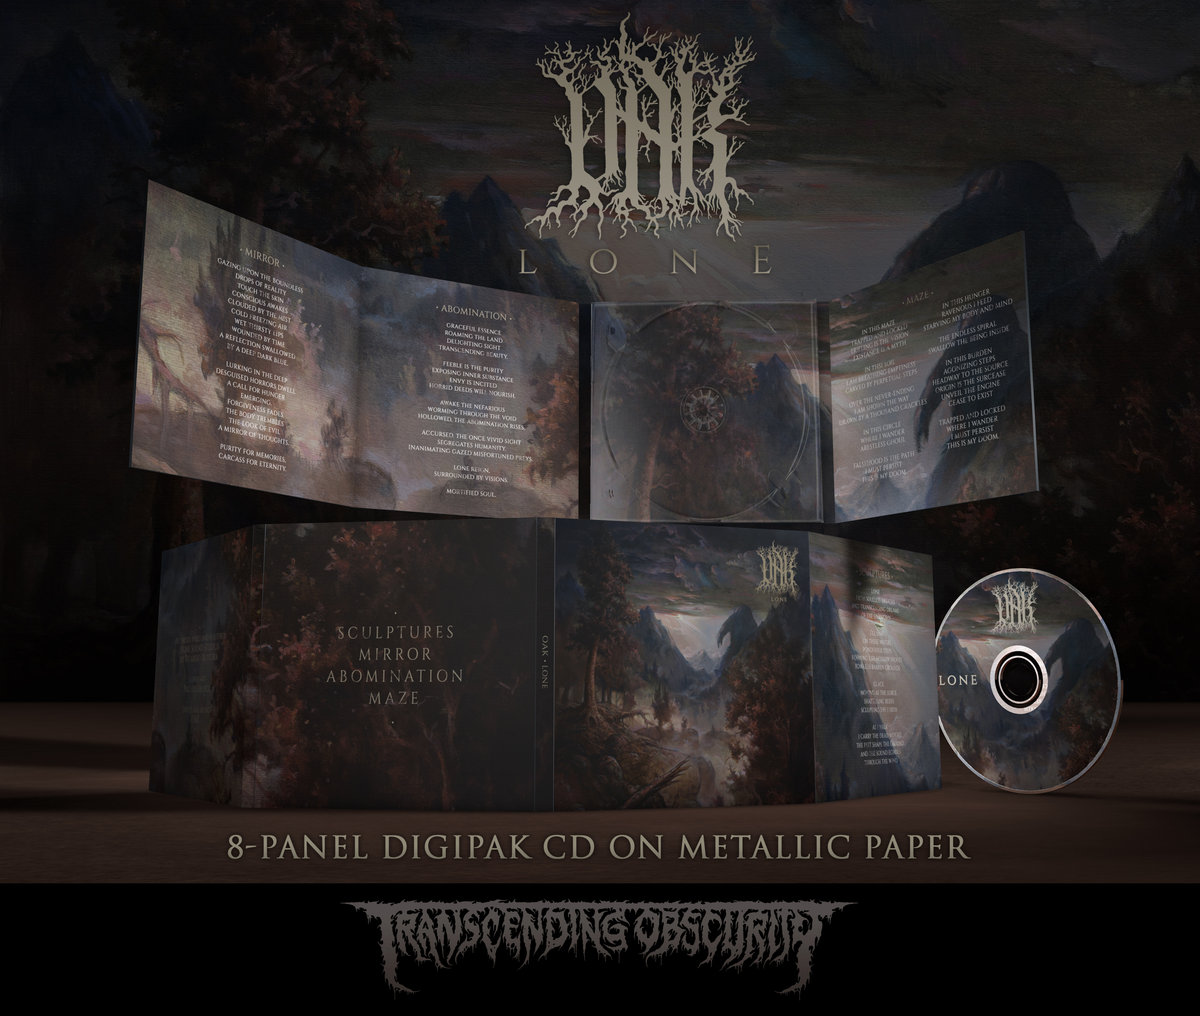 OAK (Portugal) - Lone 8-Panel Digipak CD on Metallic Paper